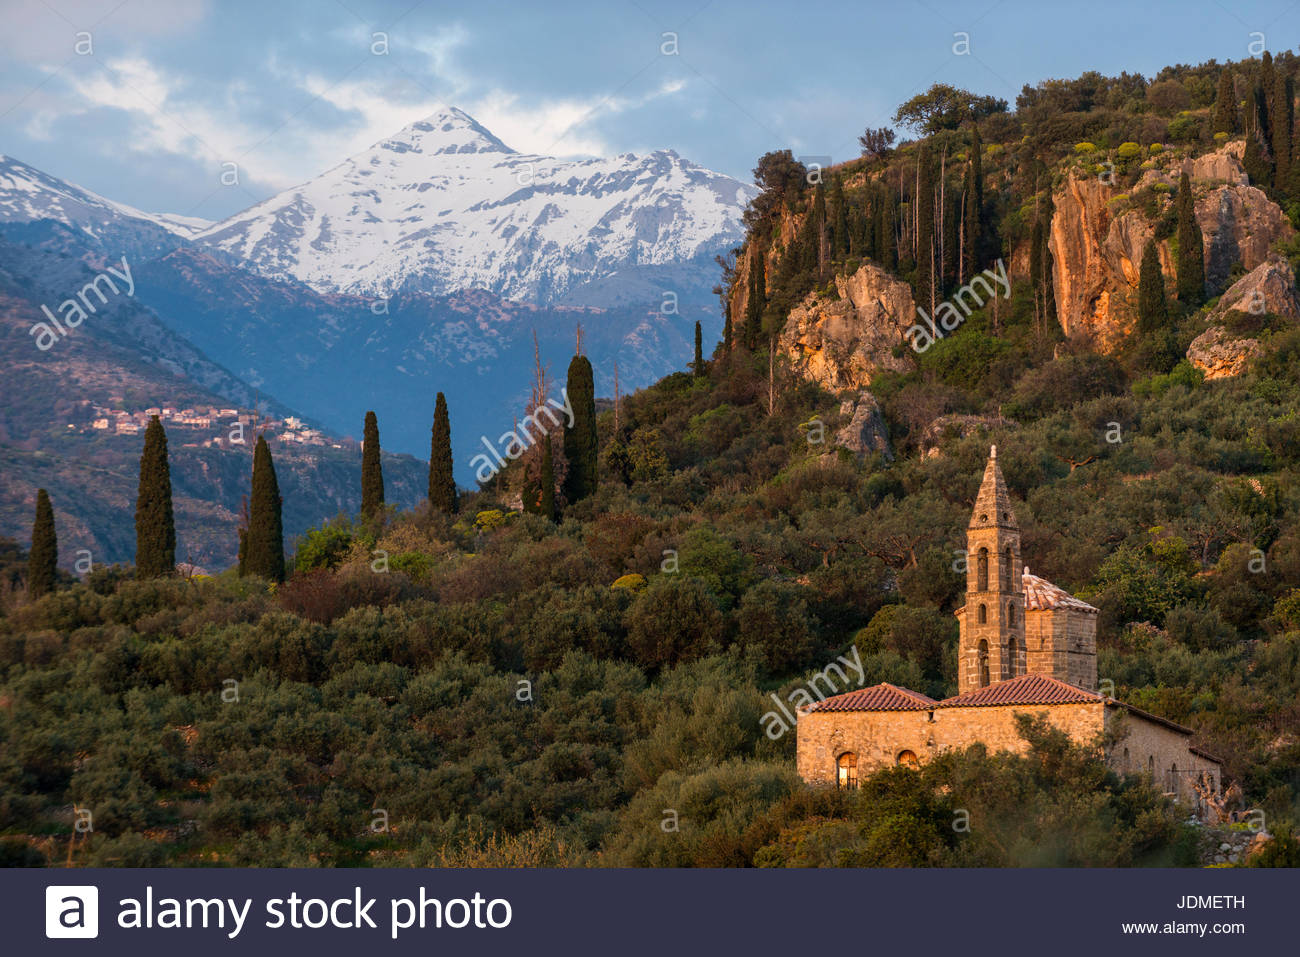 The Taygetos mountains loom behind a church in the Peloponnese. - Stock Image